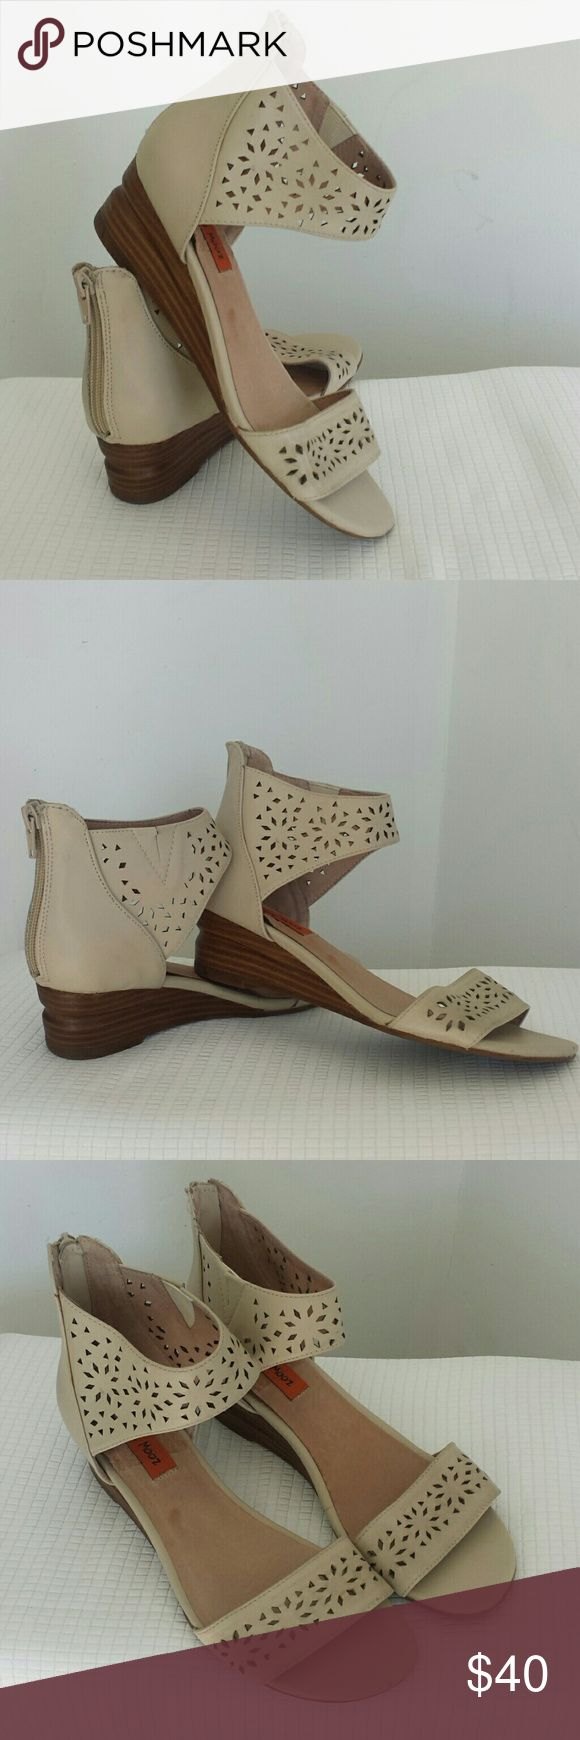 "MIZ MOOZ PASADENA WEDGE The Pasadena is an adorable wedge. It features a 1 3/4"" wrapped wood stacked heel and diomand cut out detail along the toe box and ankle. This is the perfect warm weather sandal! Wear your Pasadena with a cute white flowy top. Leather These were a store sample and show very little to no wear and look new. Miz Mooz Shoes Sandals"